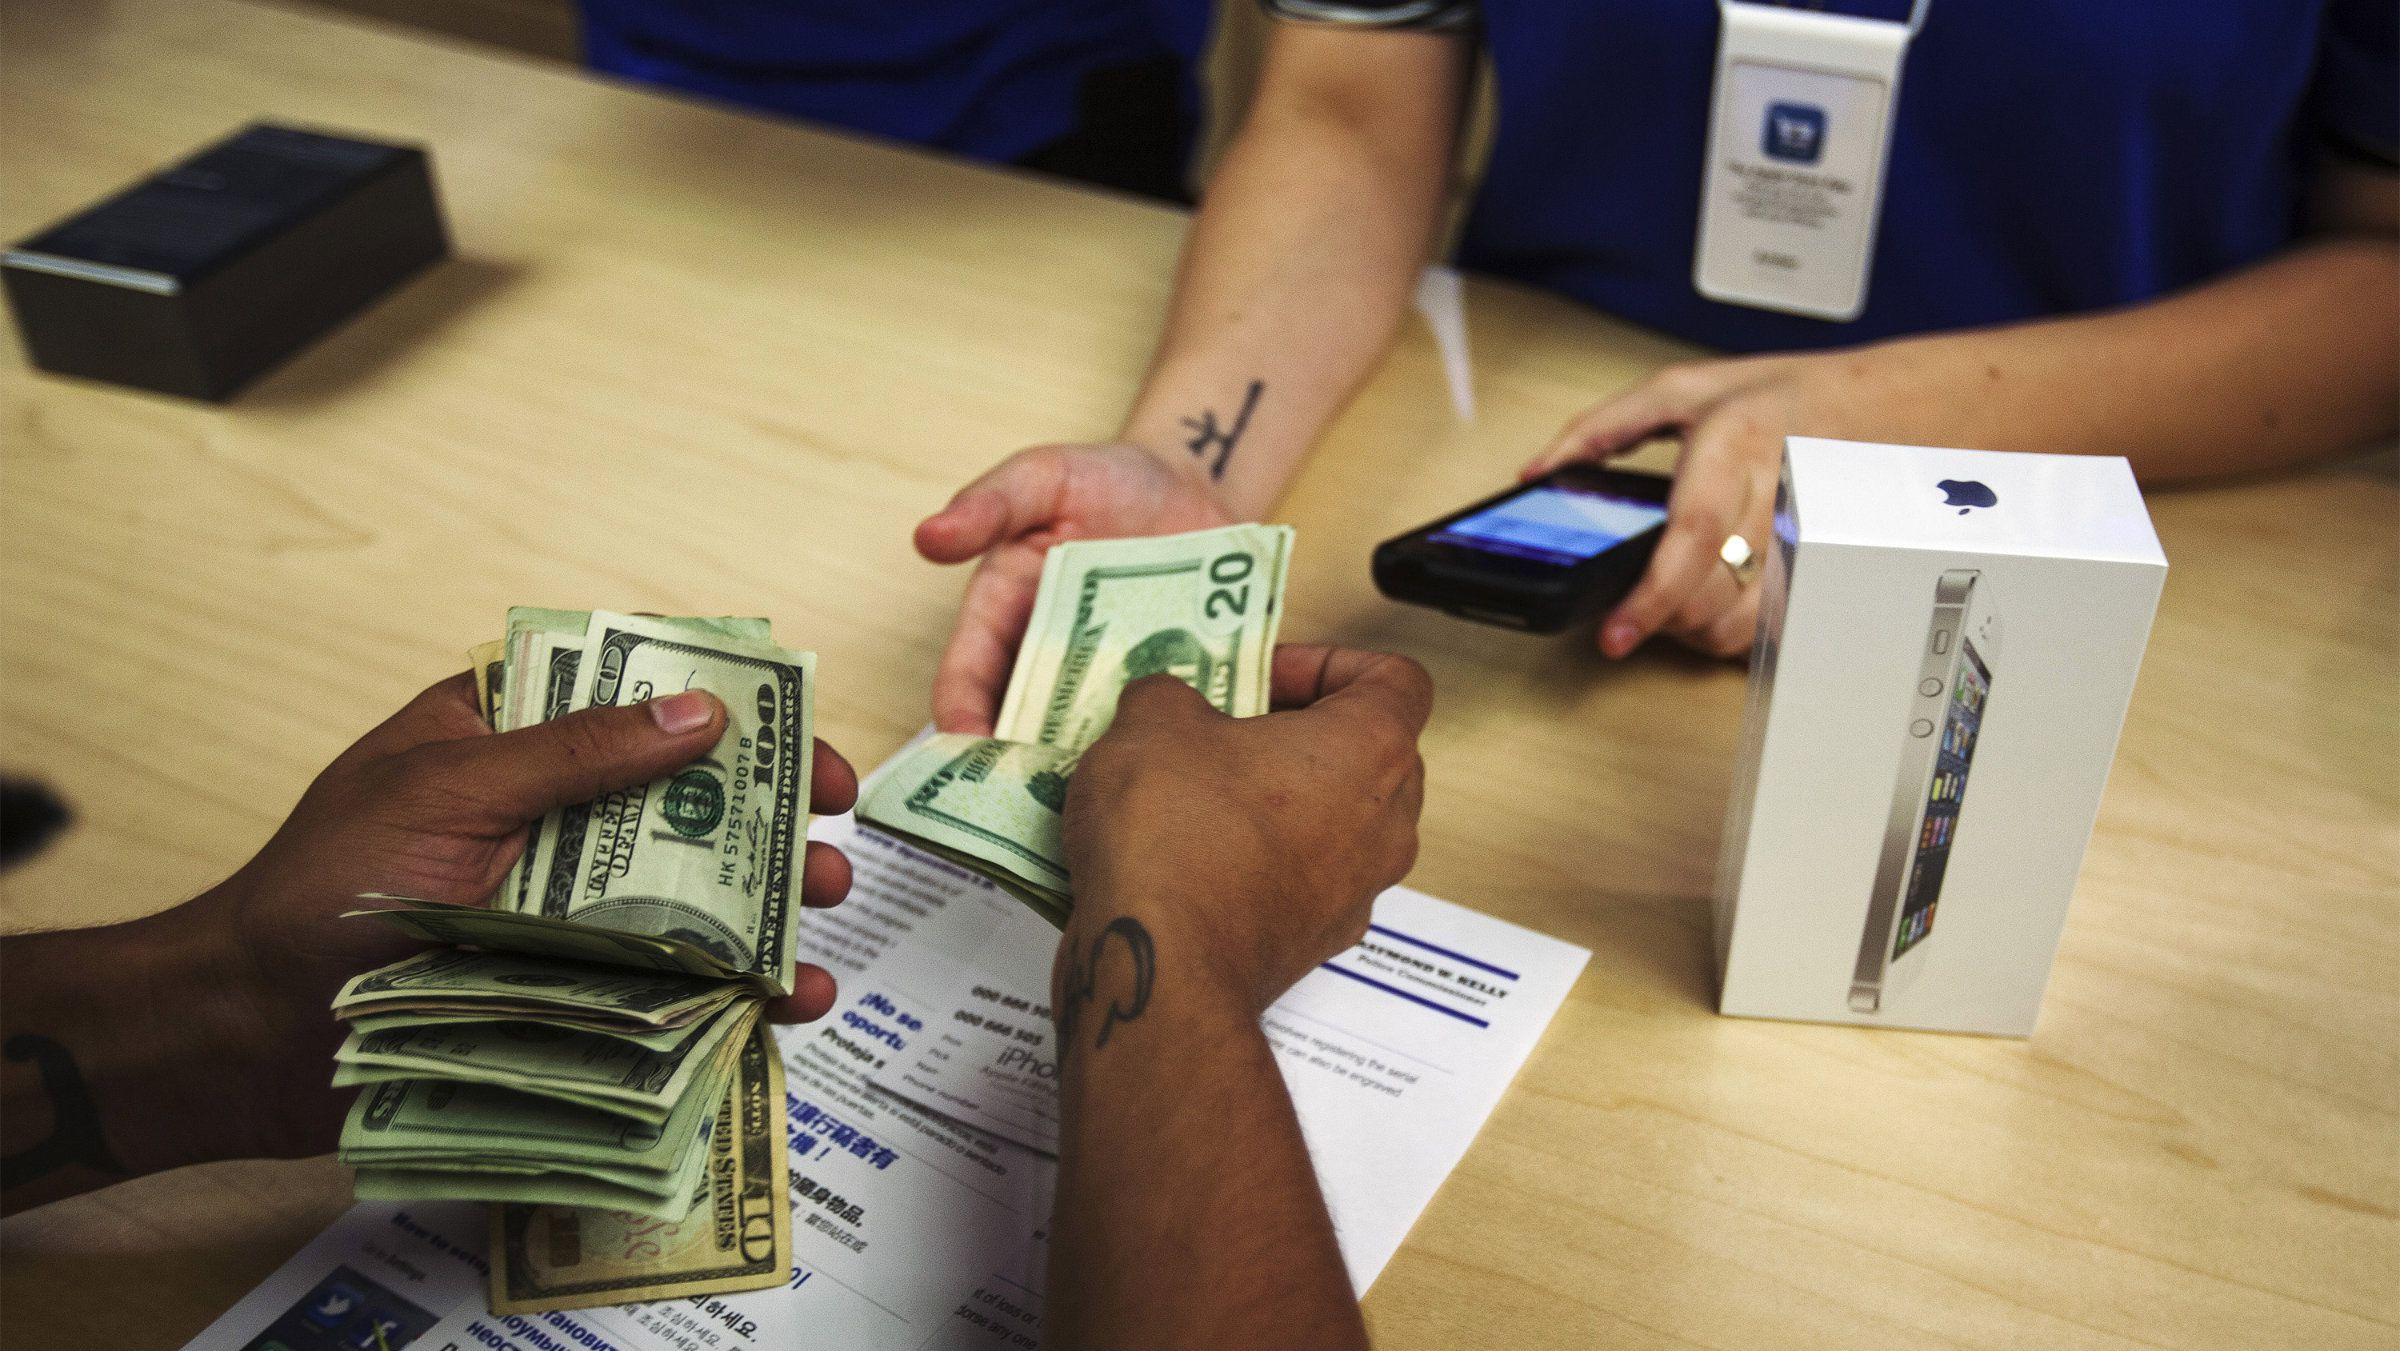 A man pays cash for an Apple iPhone 5 phone in the Apple Store on 5th Avenue in New York, September 21, 2012.